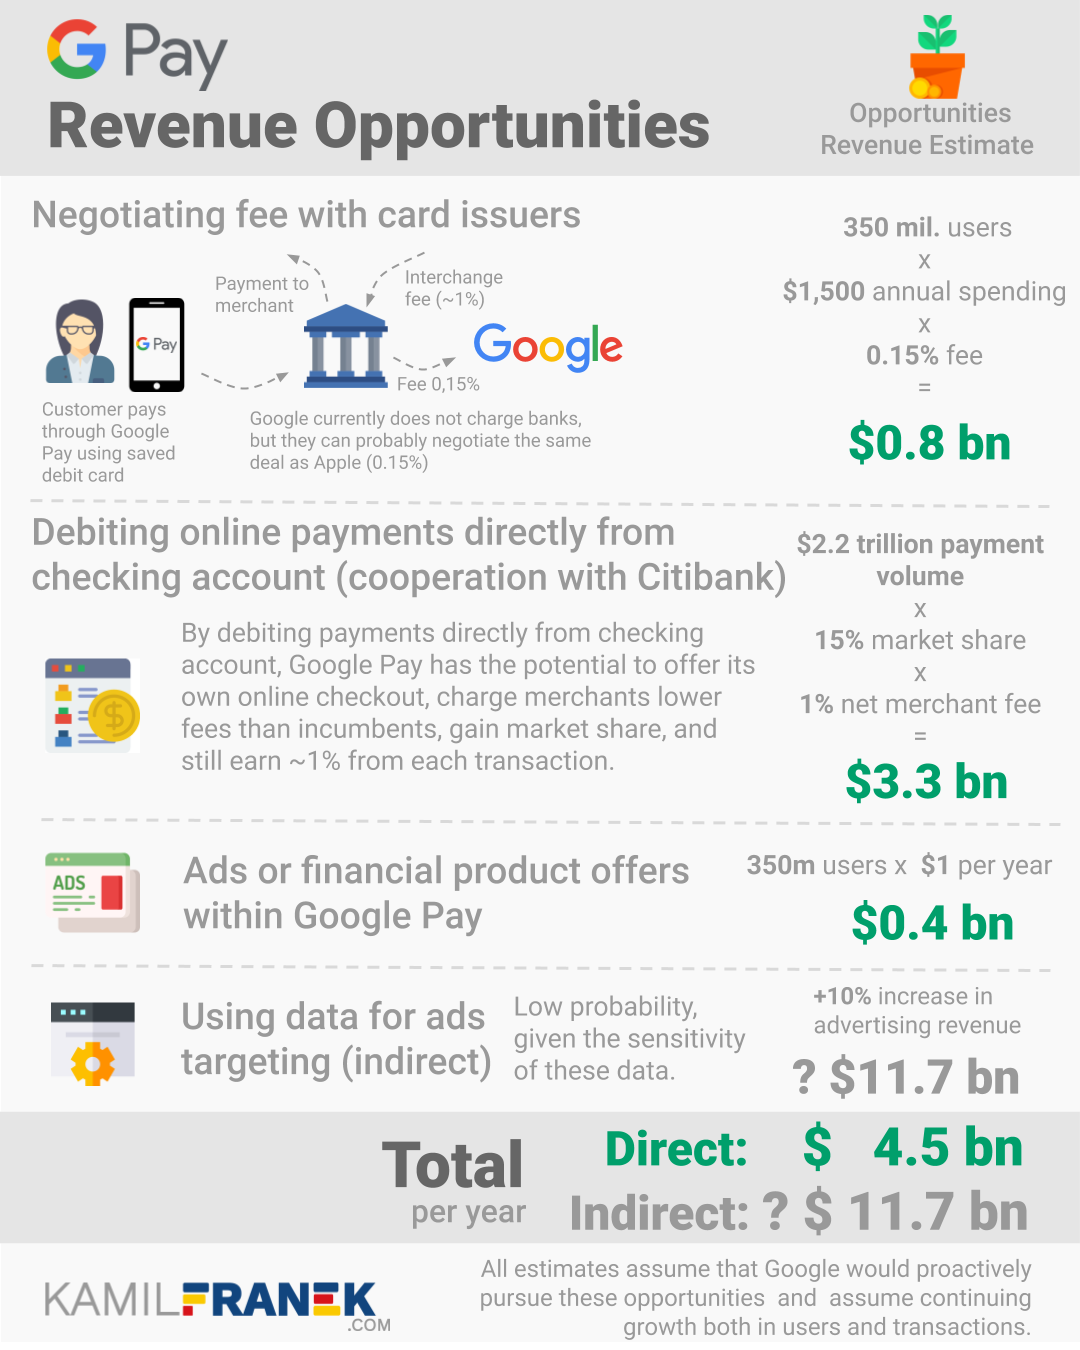 Infographic showing breakdown of the revenue potential of several Google Pay monetization opportunities